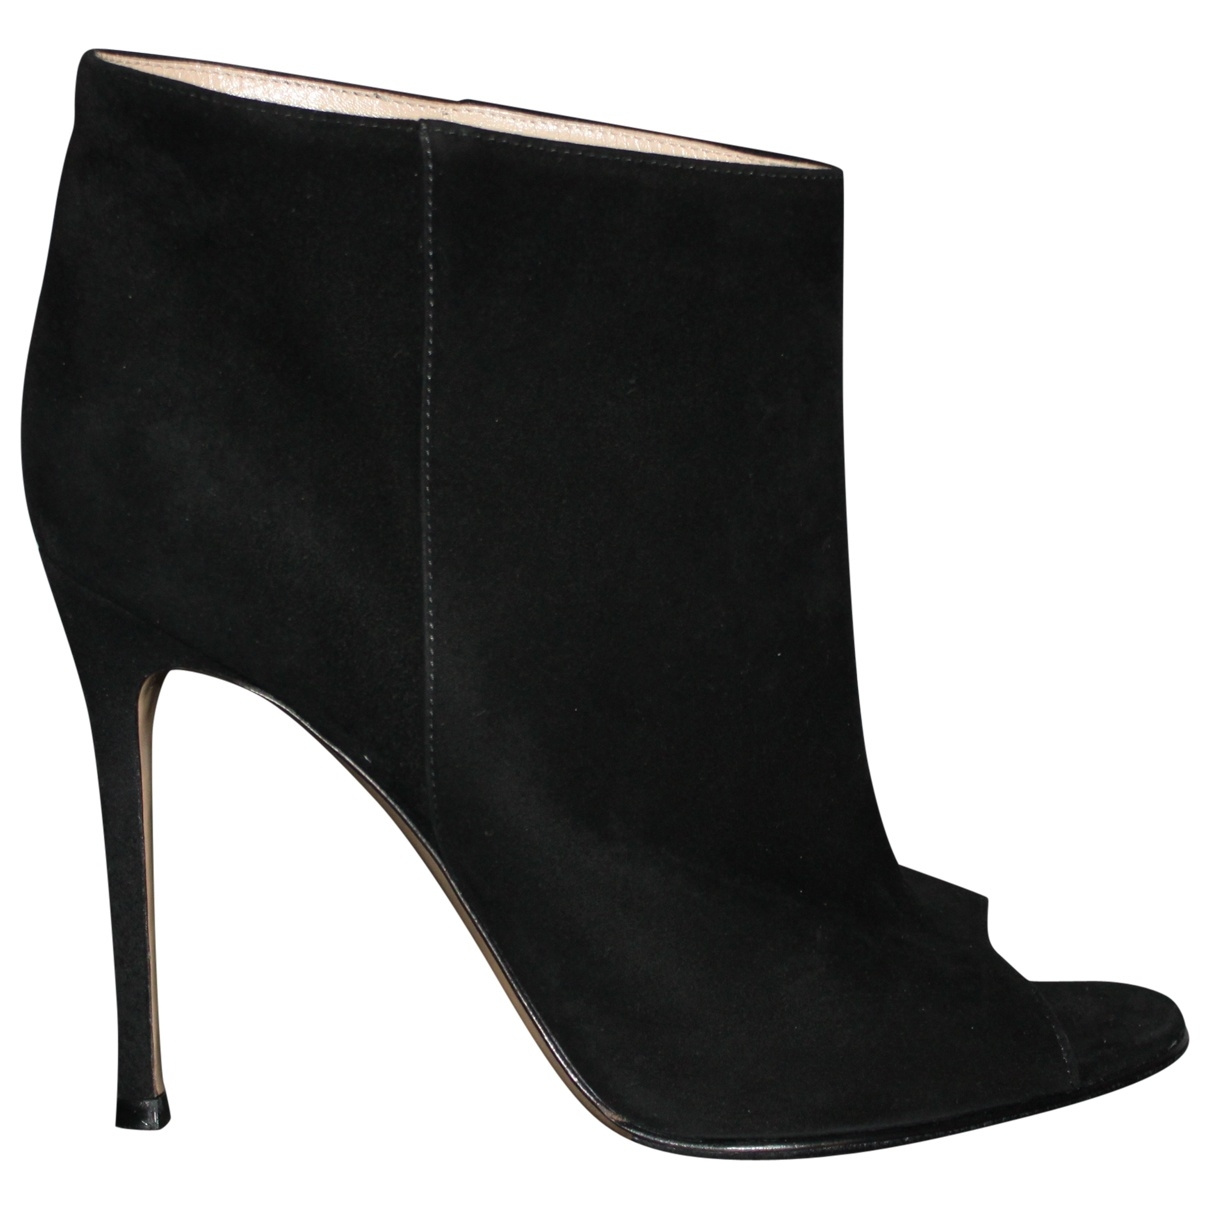 Gianvito Rossi \N Black Suede Ankle boots for Women 37.5 EU